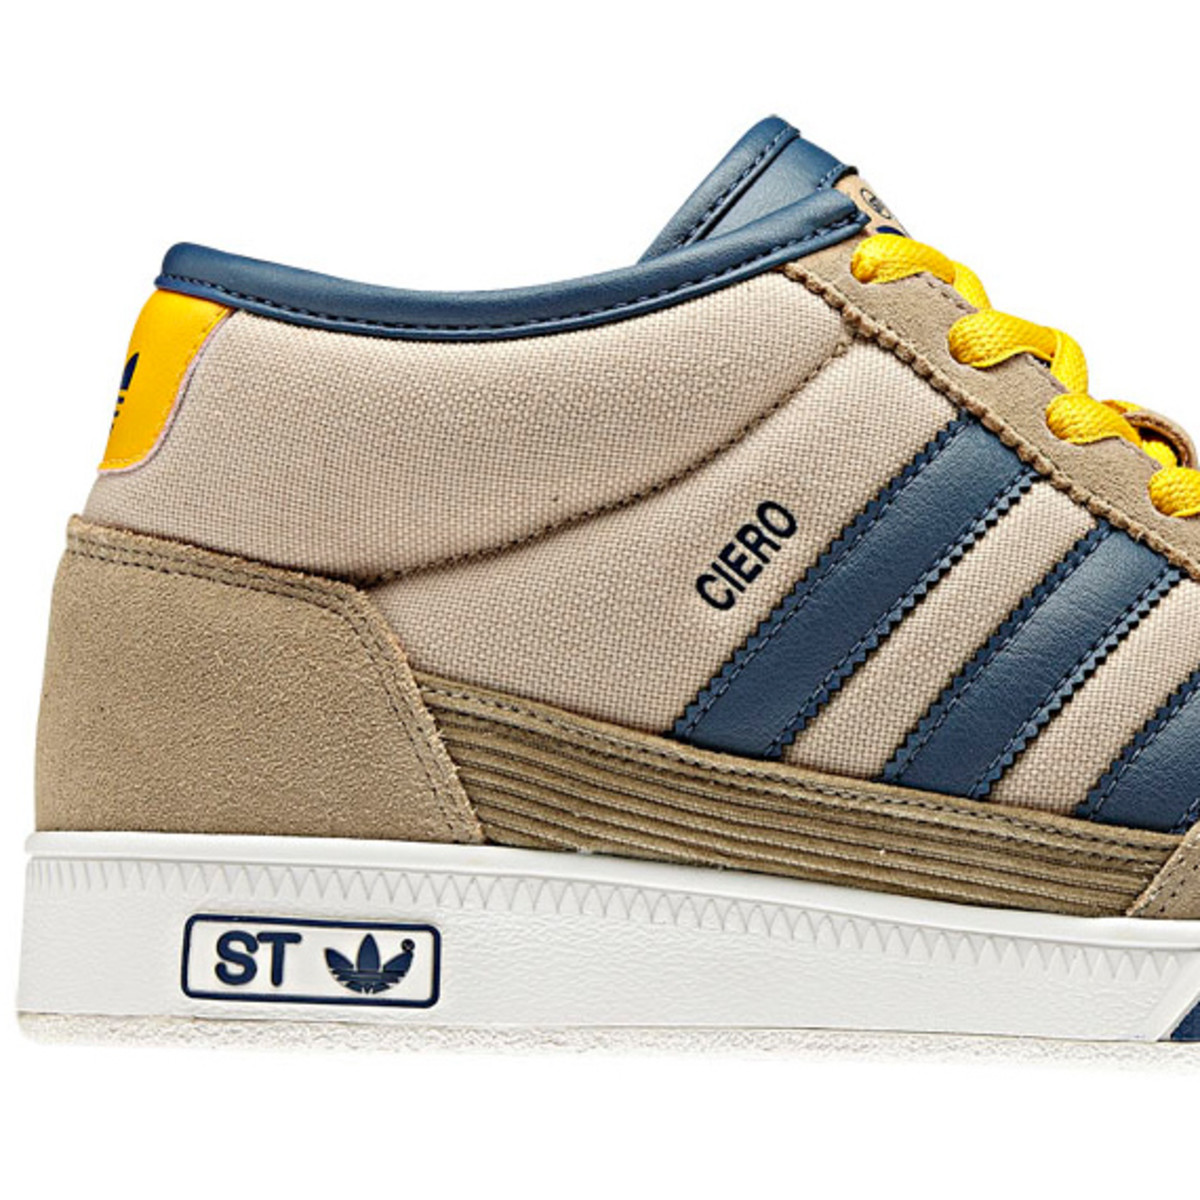 adidas-originals-st-collection-sneakers-06